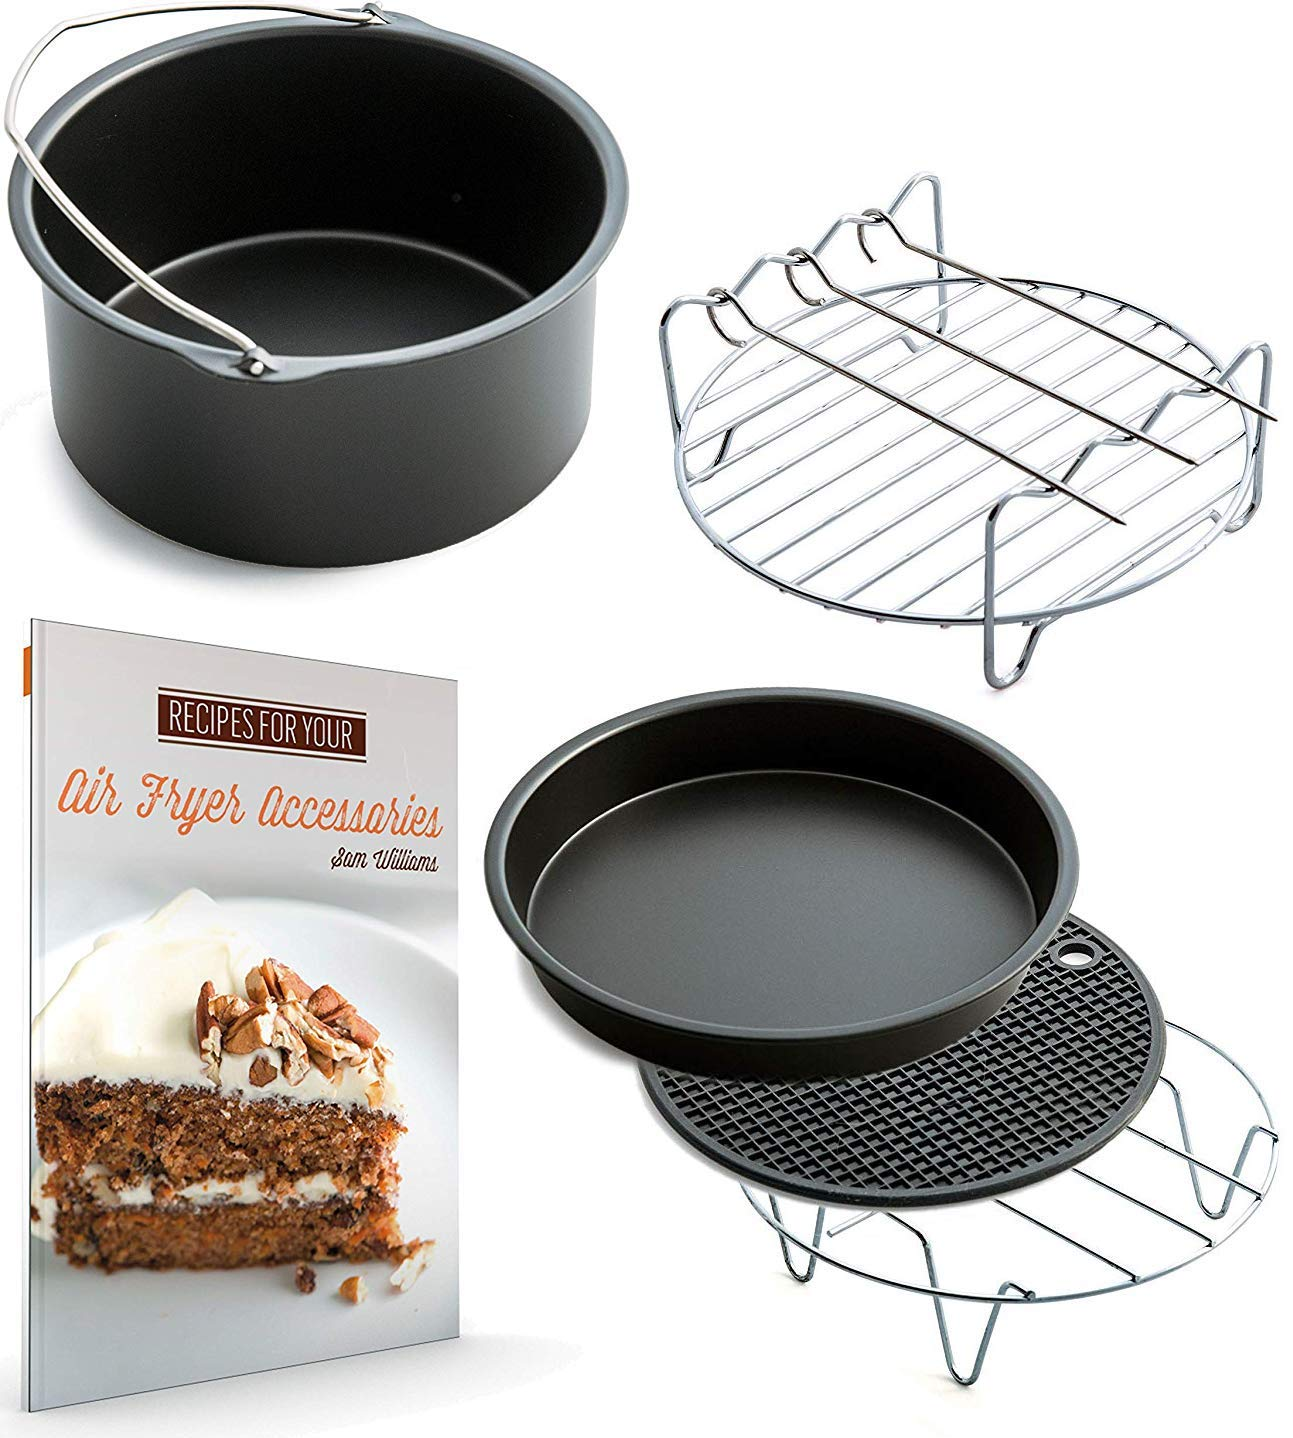 XL Air Fryer Accessories XL for Power Airfryer XL Gowise Cozyna and Phillips, Set of 5, includes a recipe book Fit all 5.3QT - 5.8QT